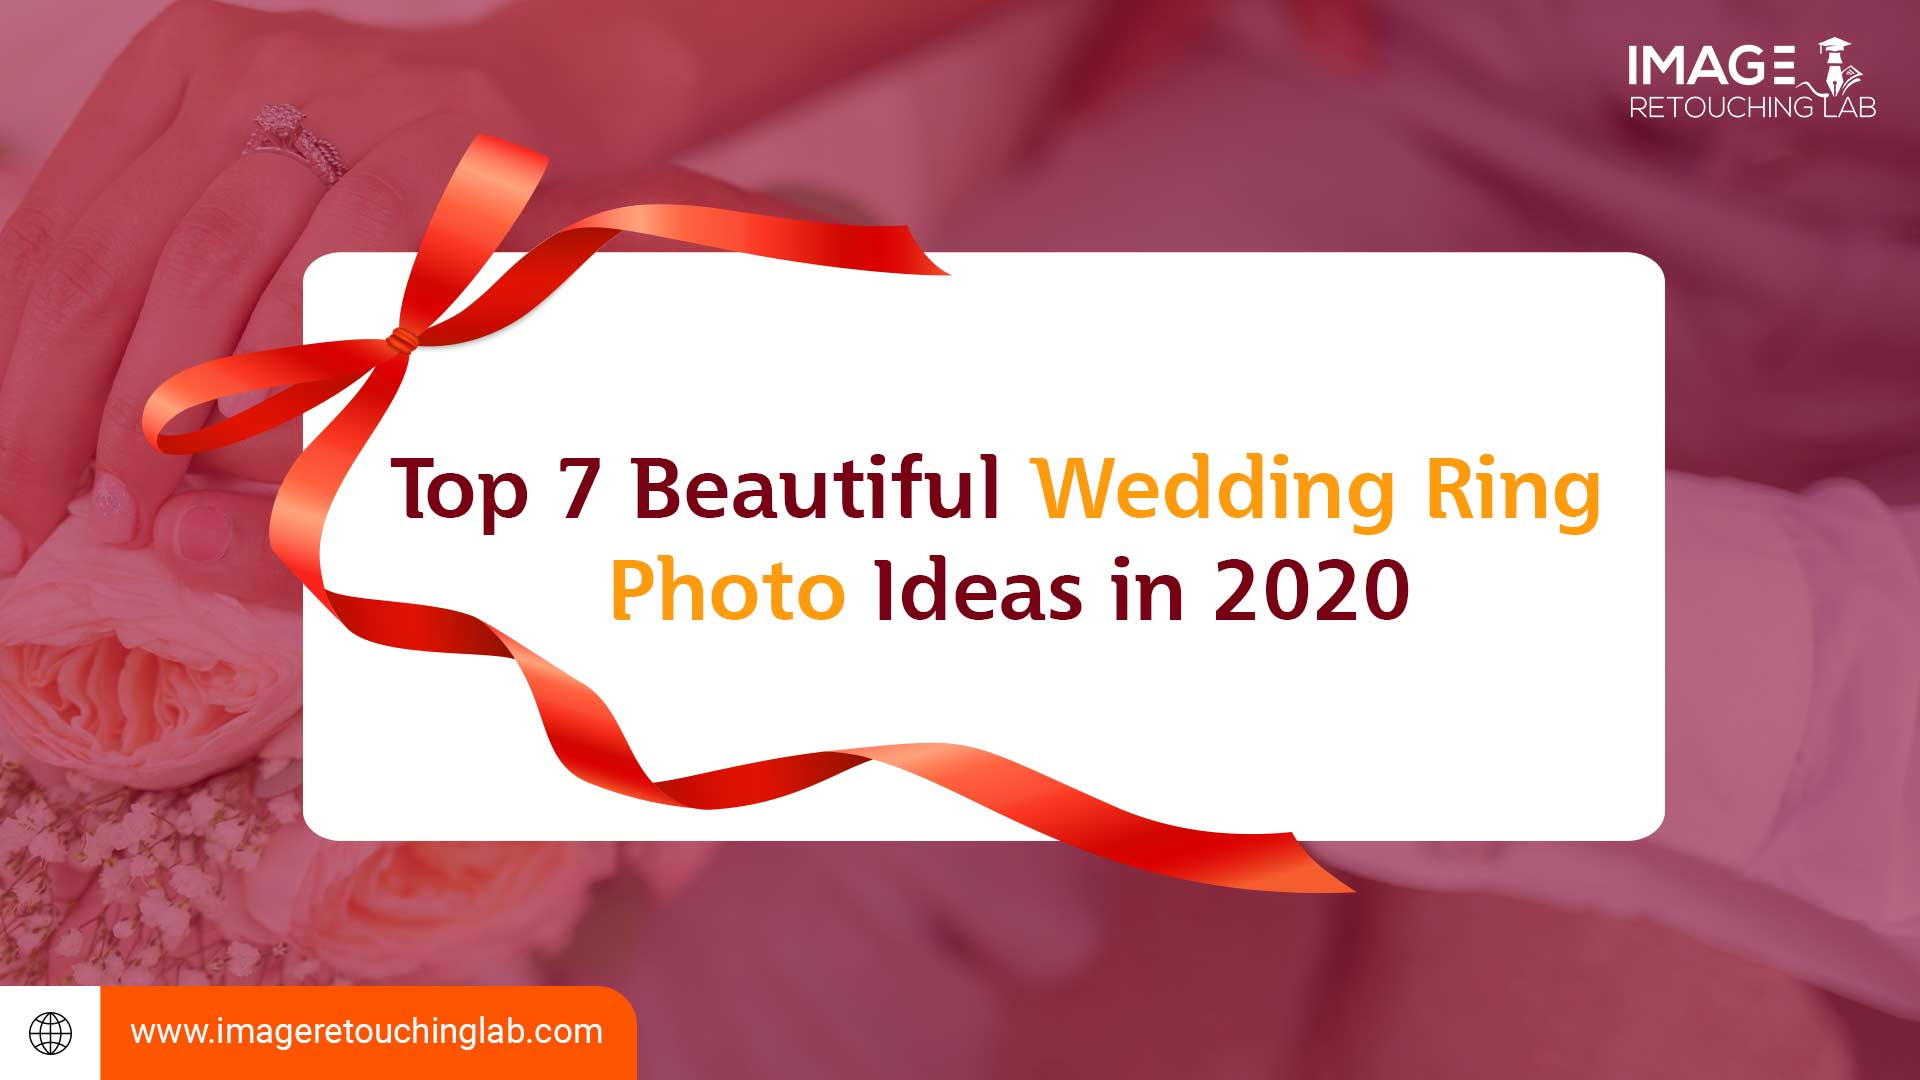 Top 7 Beautiful Wedding Ring Photo Ideas in 2020